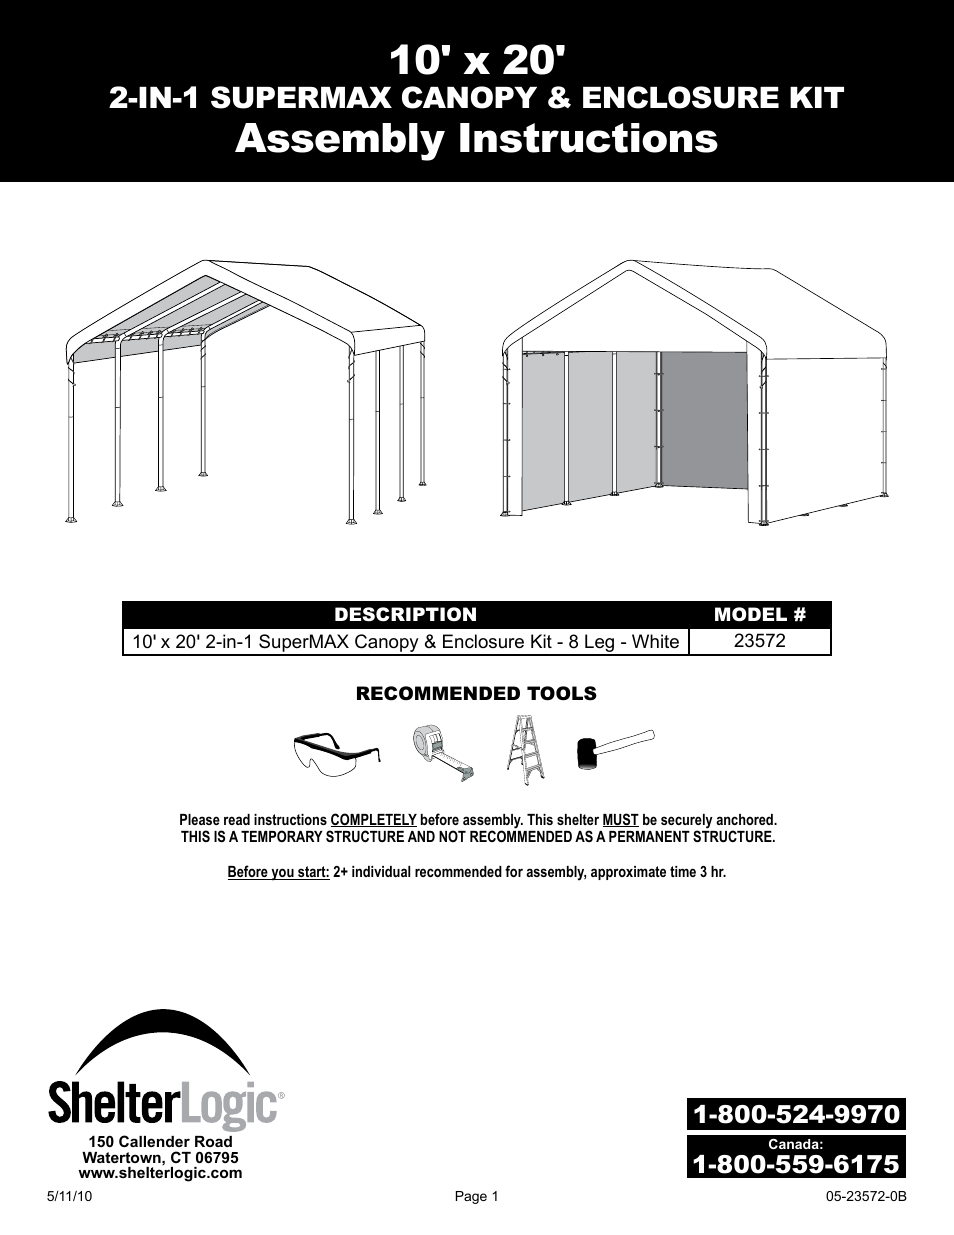 10x20 canopy tent assembly instructions